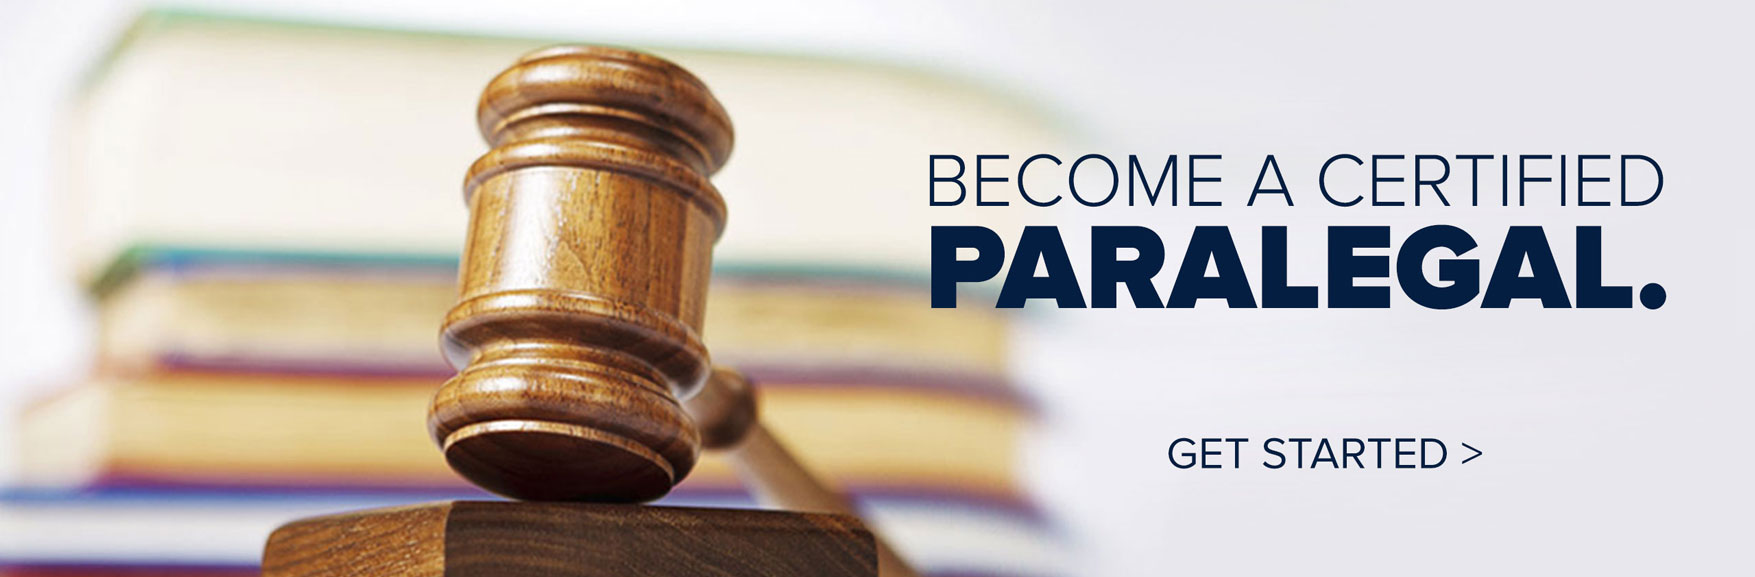 Become a Certified Paralegal. Get Started.